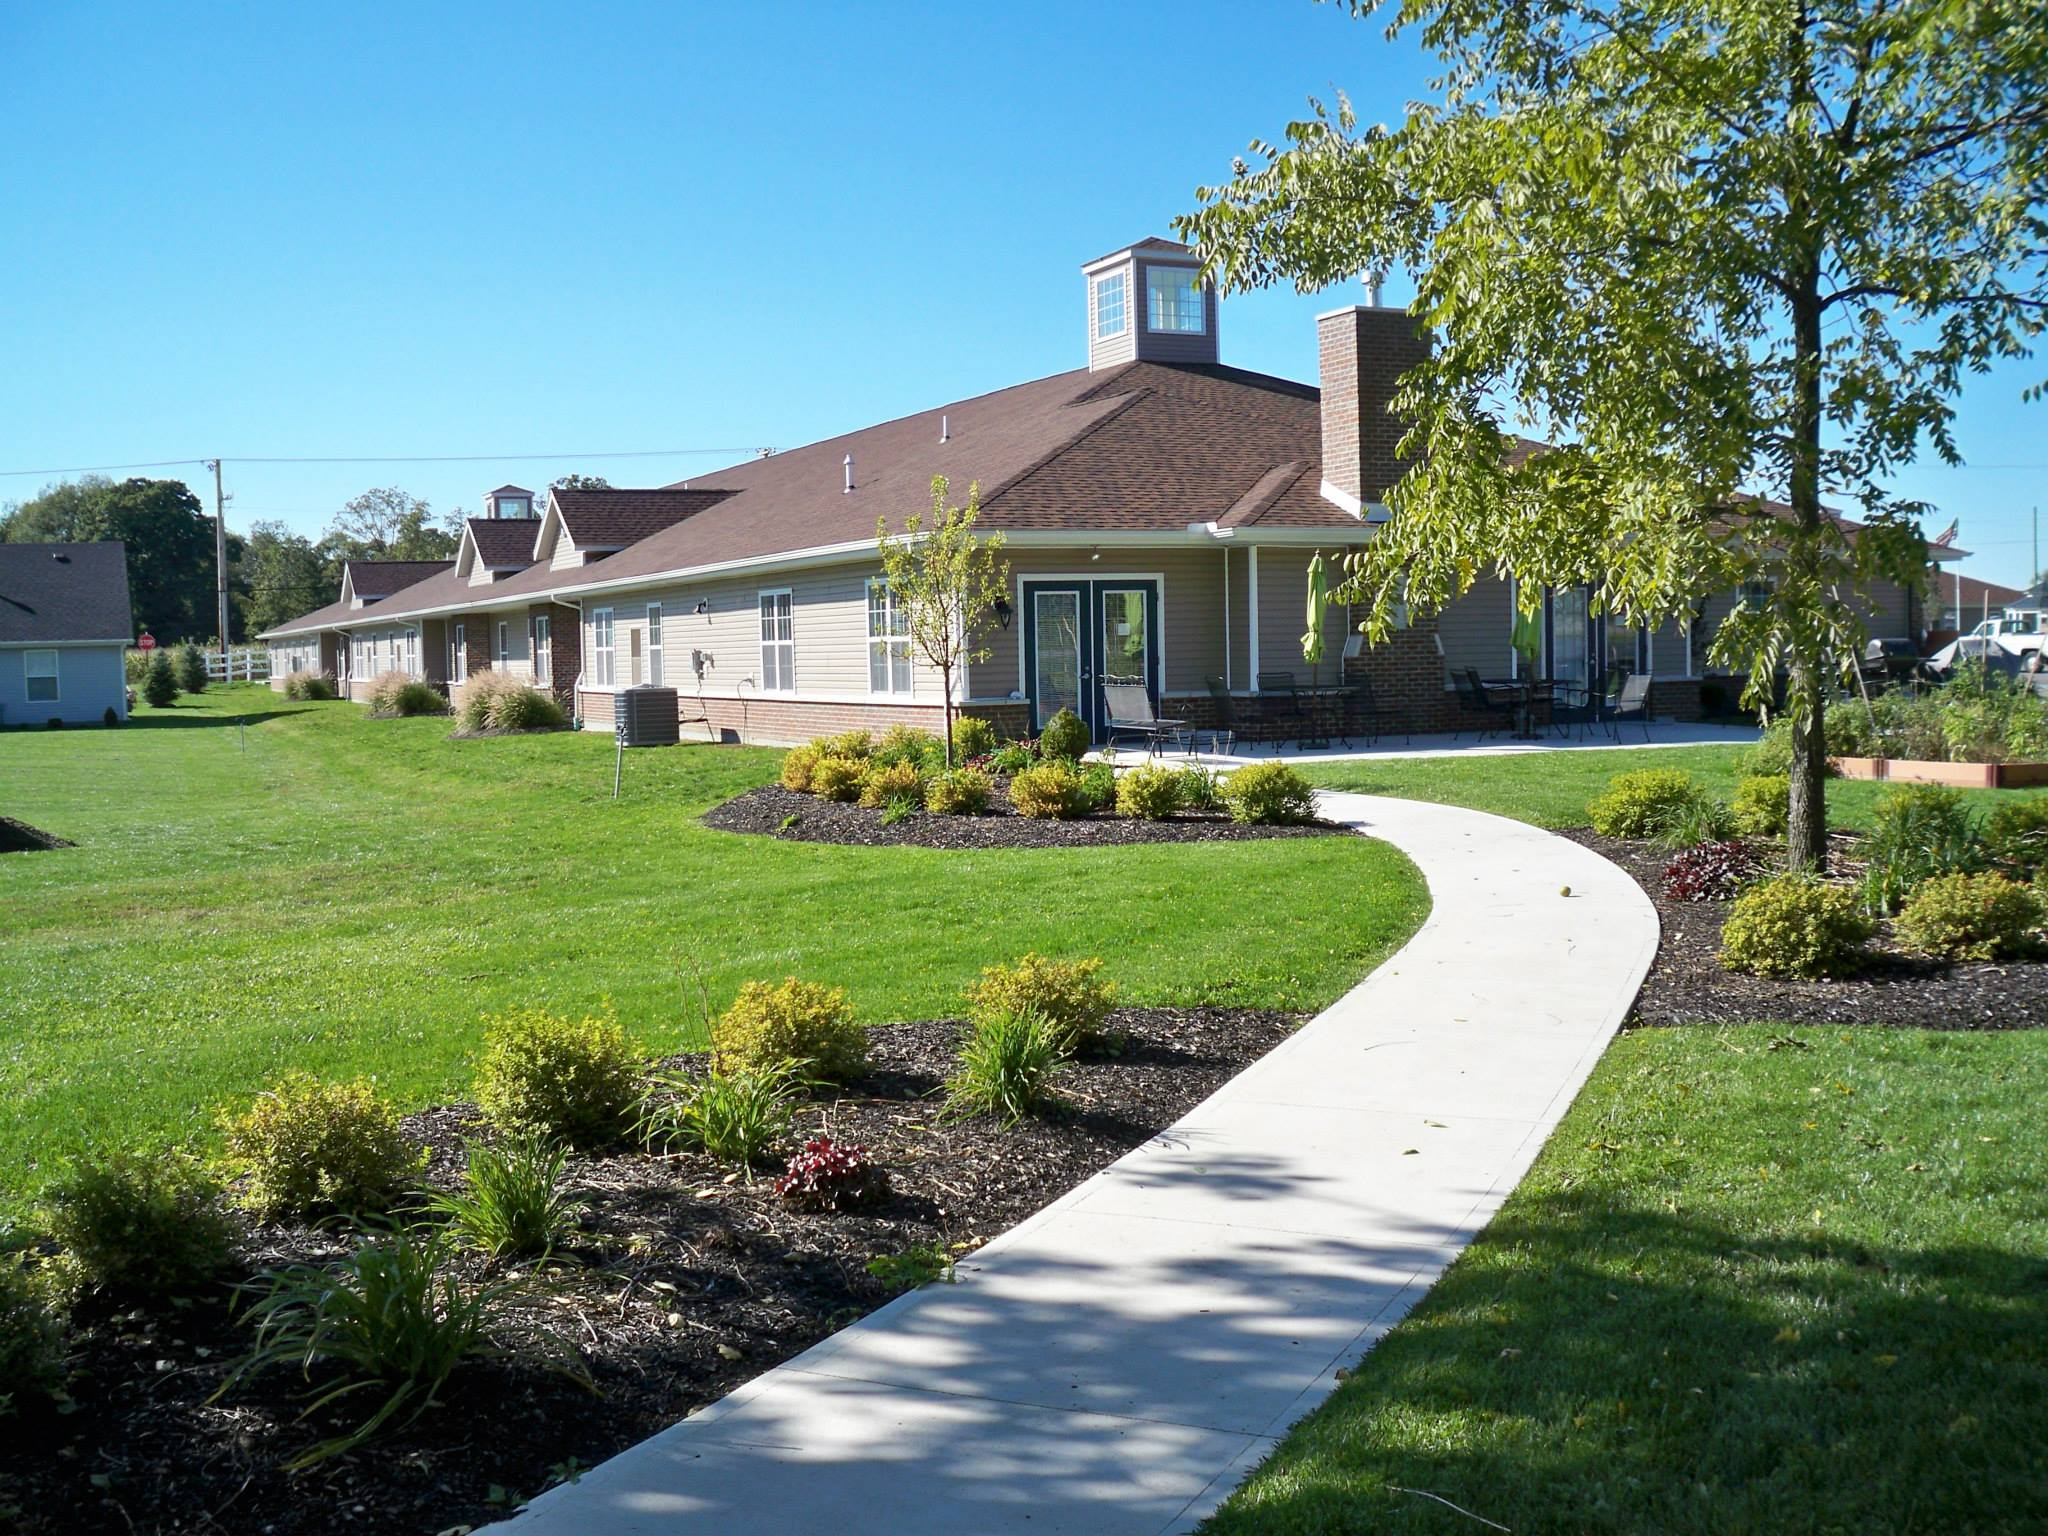 Image of Lake Avenue Retirement Village